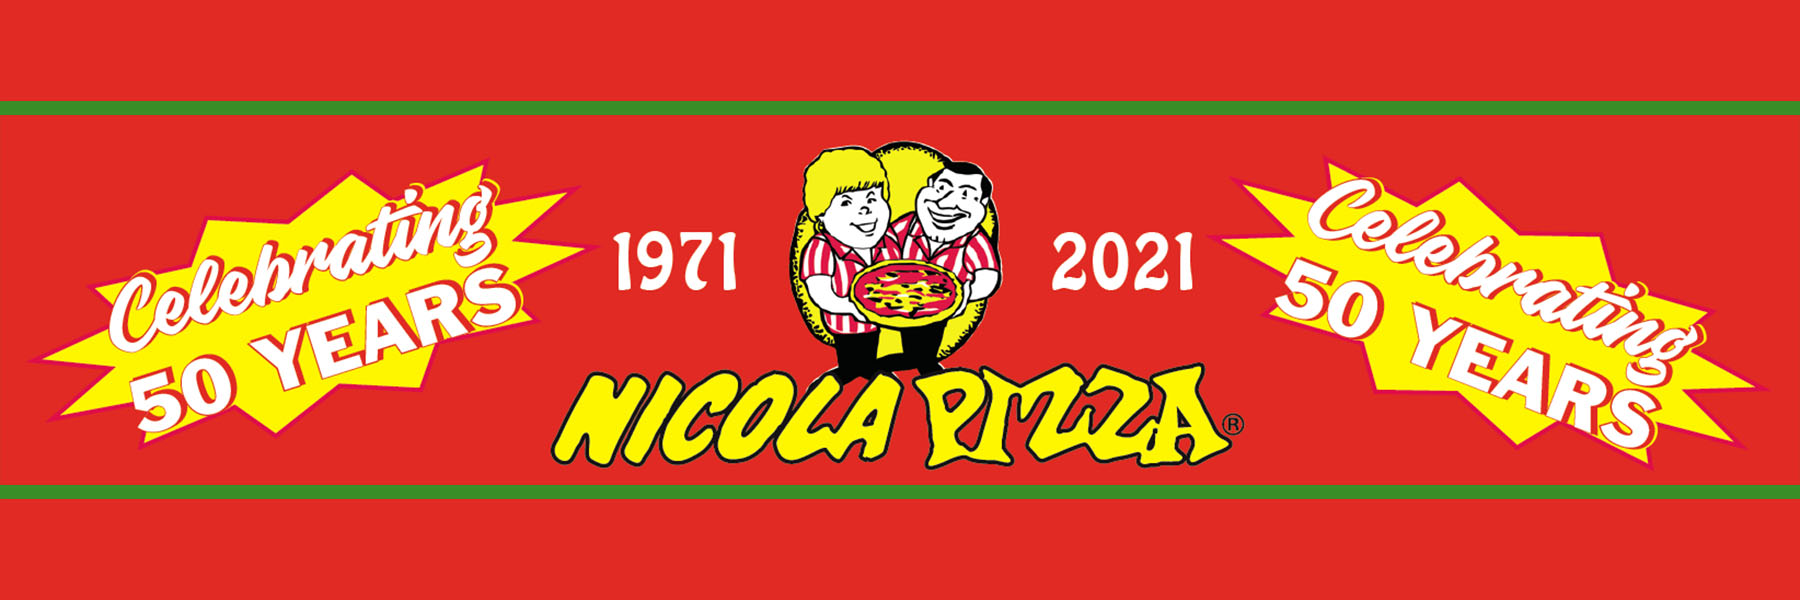 Nicola Pizza Celebrating 50 Years